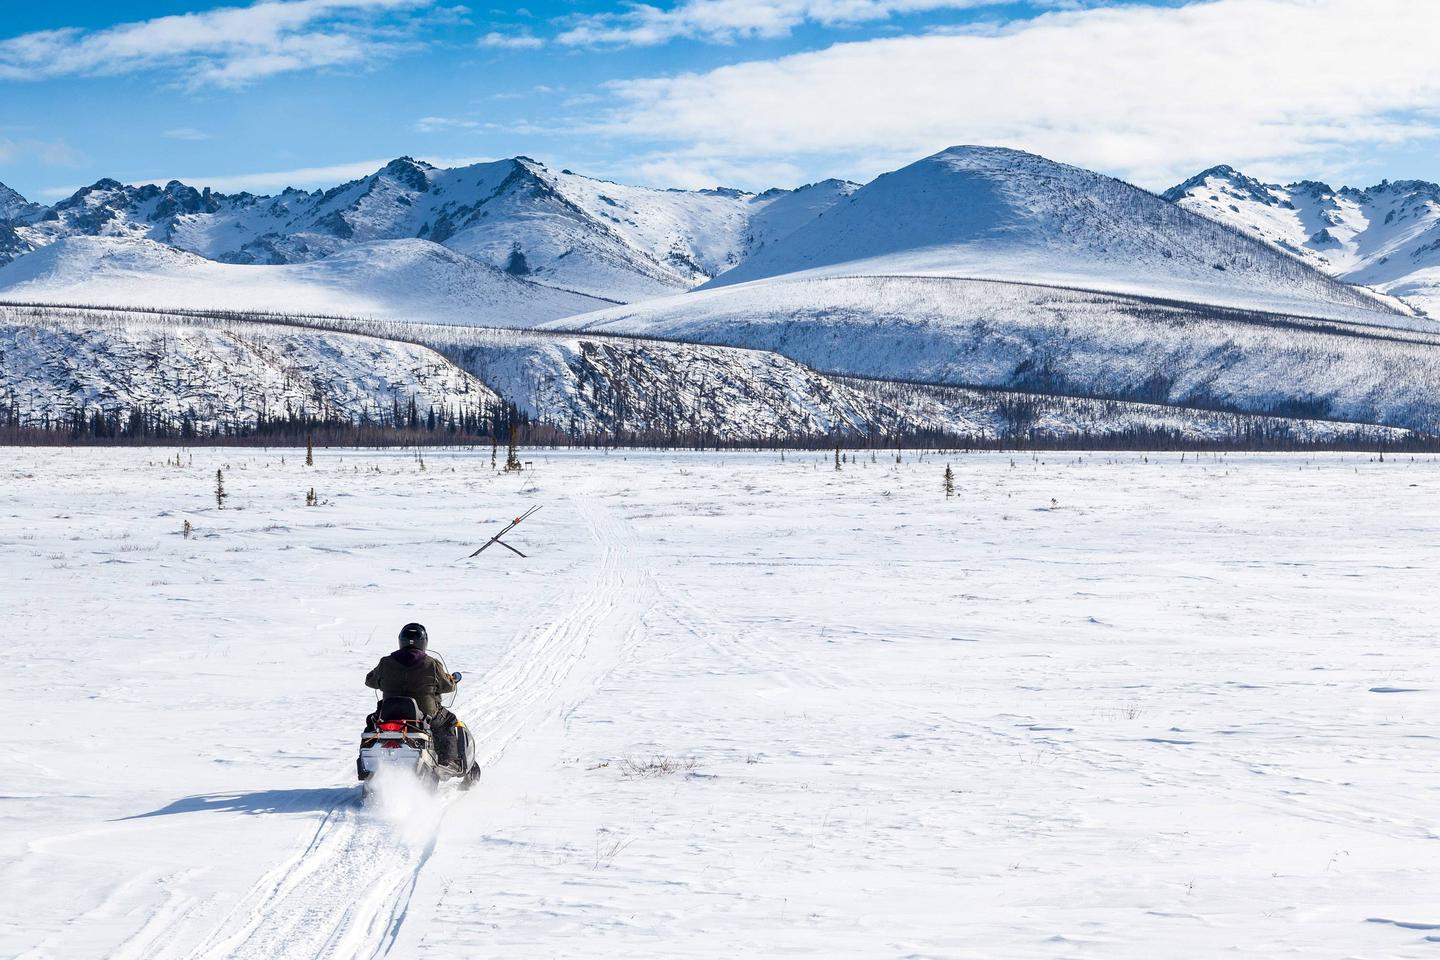 A snowmobile riders crosses a big meadow with mountains in the distance.The Colorado Creek Trail brings visitors into the heart of the White Mountains.